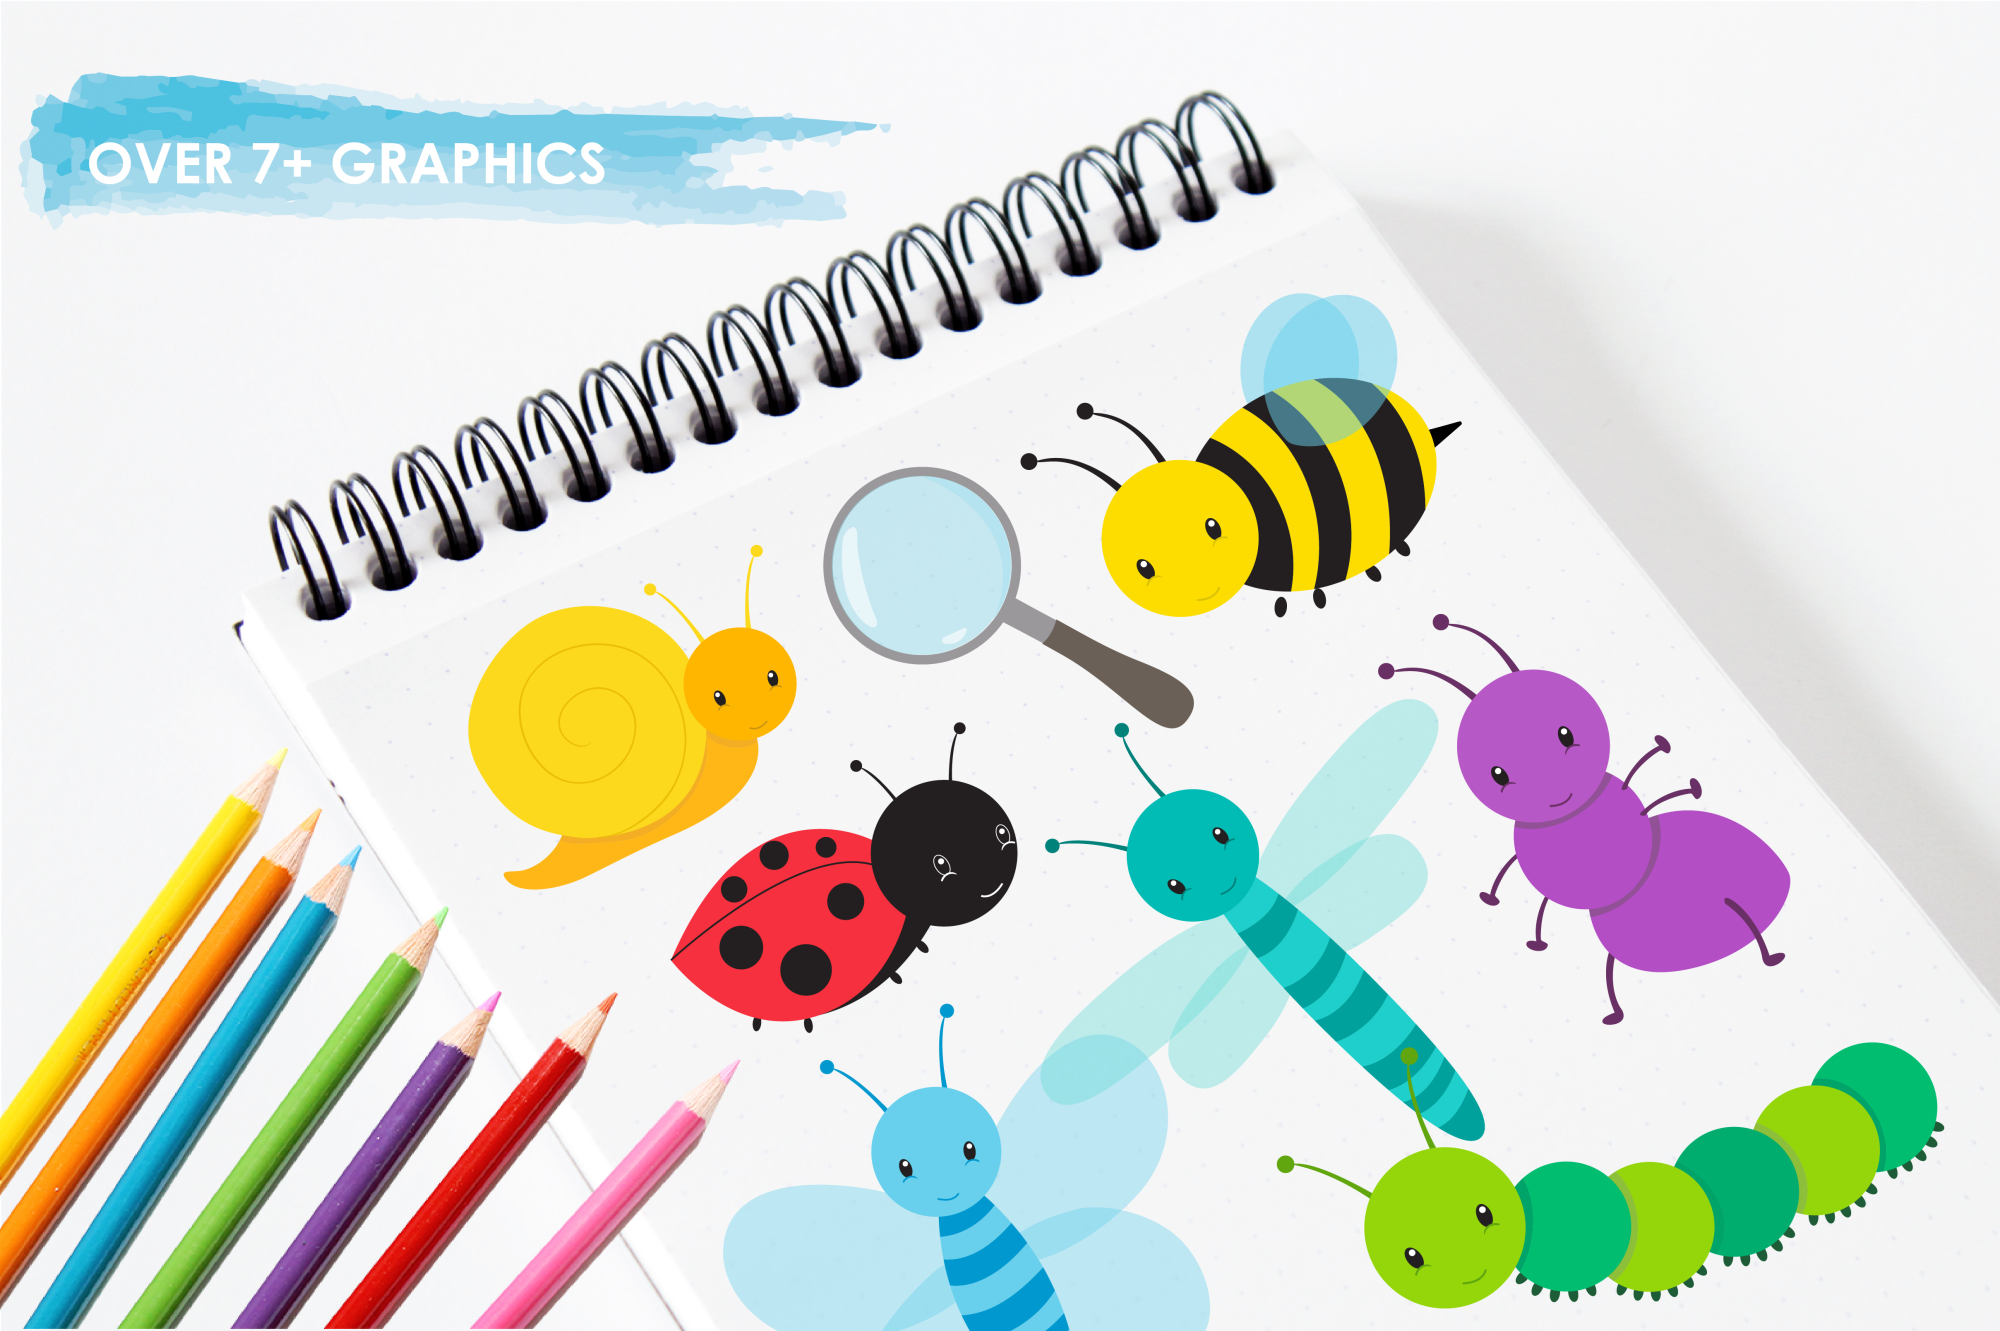 Bugging Out graphics and illustrations example image 3